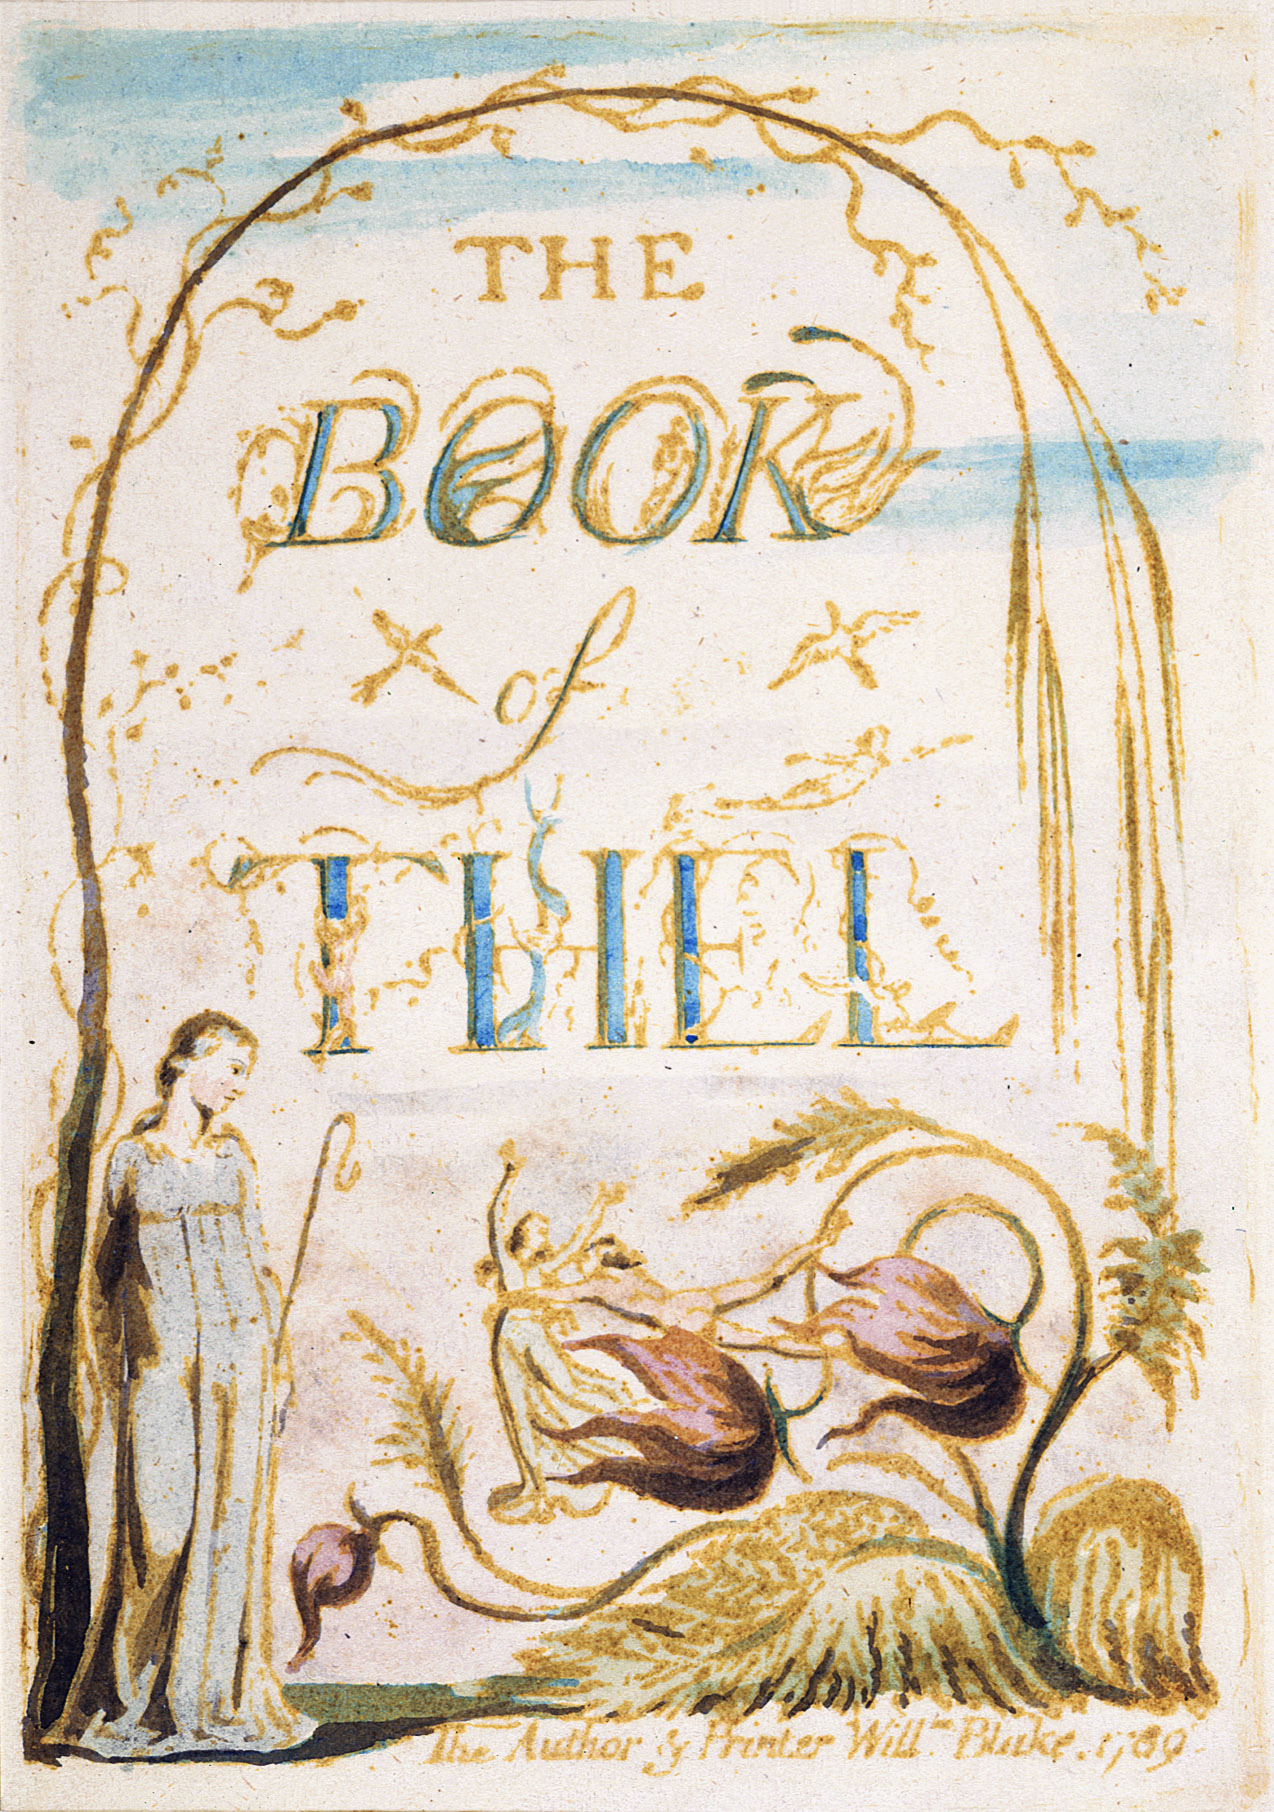 THE 	BOOK 	of 	THEL 	The Author & Printer Willm. Blake. 1789